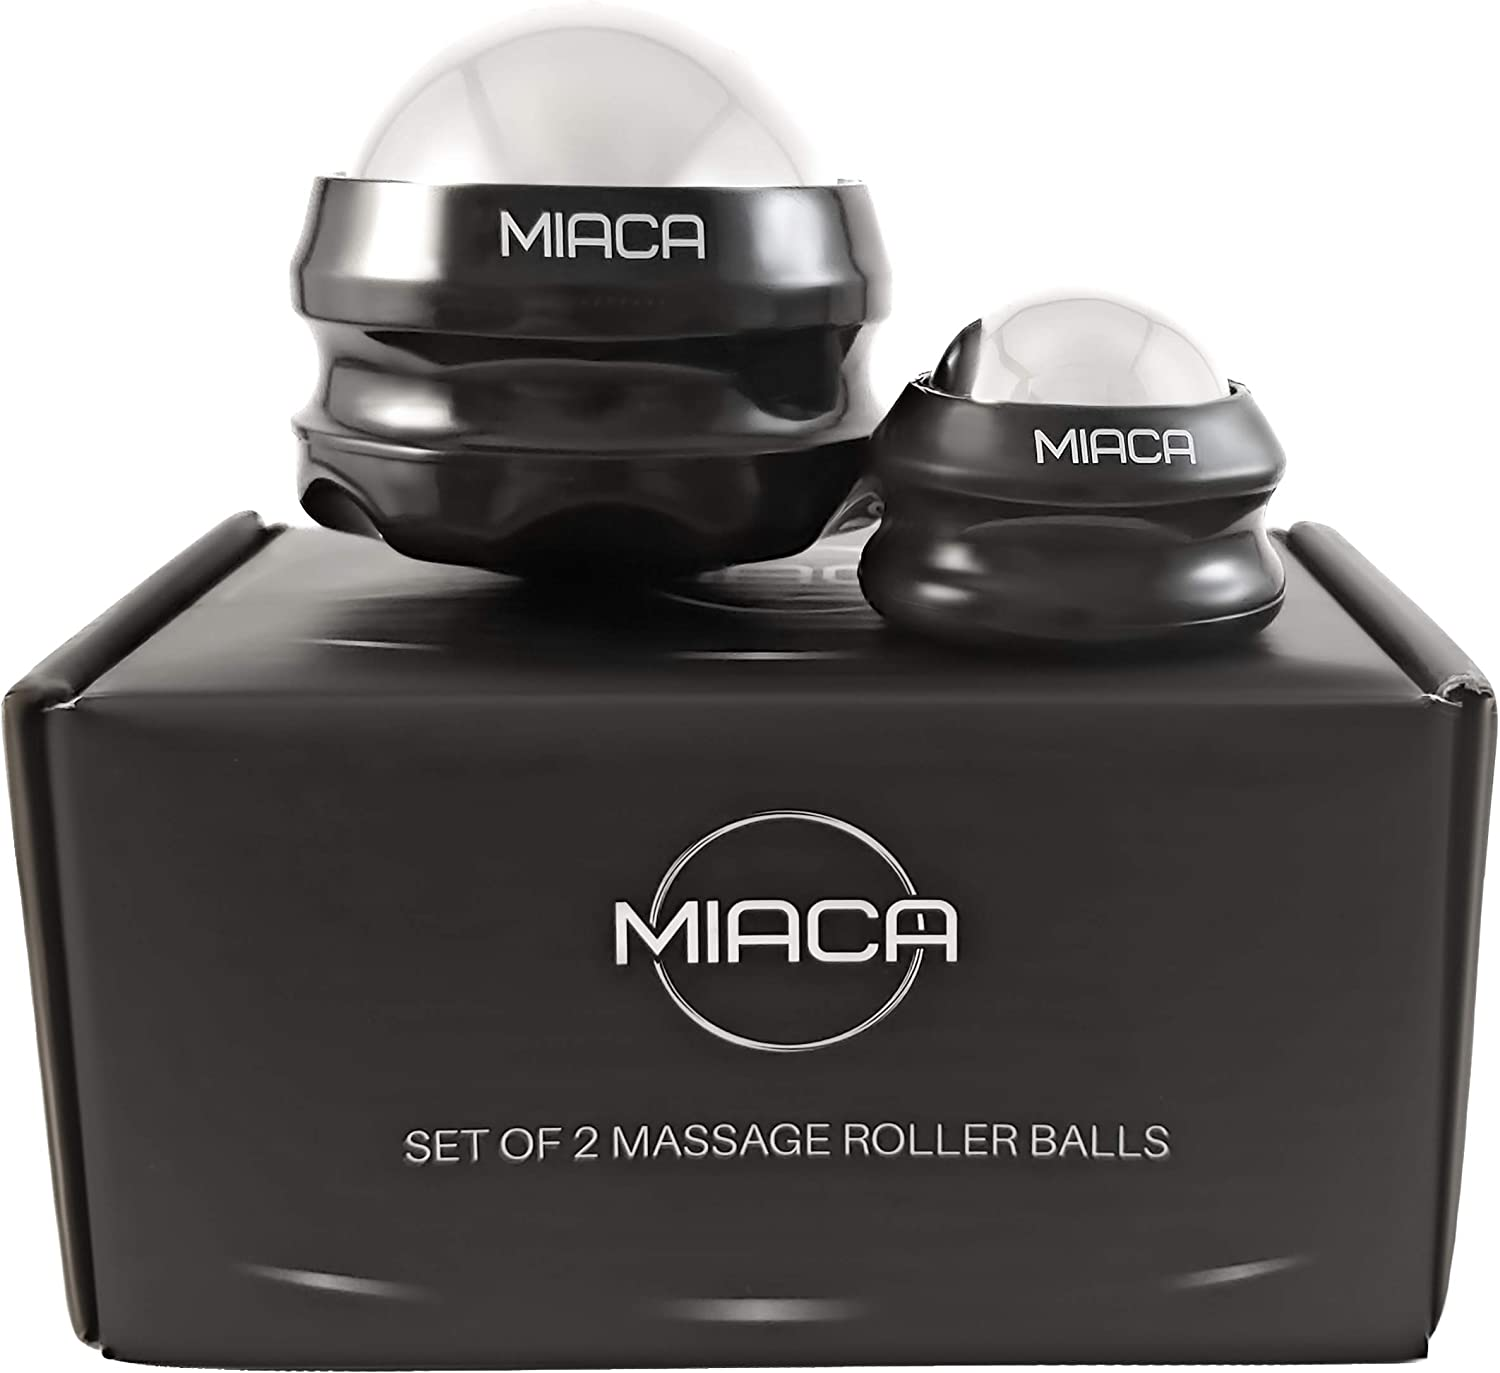 Cryosphere Cold Massage Ball Roller Set by Miaca   2 Sizes   Ice Roller for Sore Muscles   Metal Ball for Back Pain Relief   Foot Muscle Roller - Plantar Fasciitis   Small Face Roller- for Puffy Eye